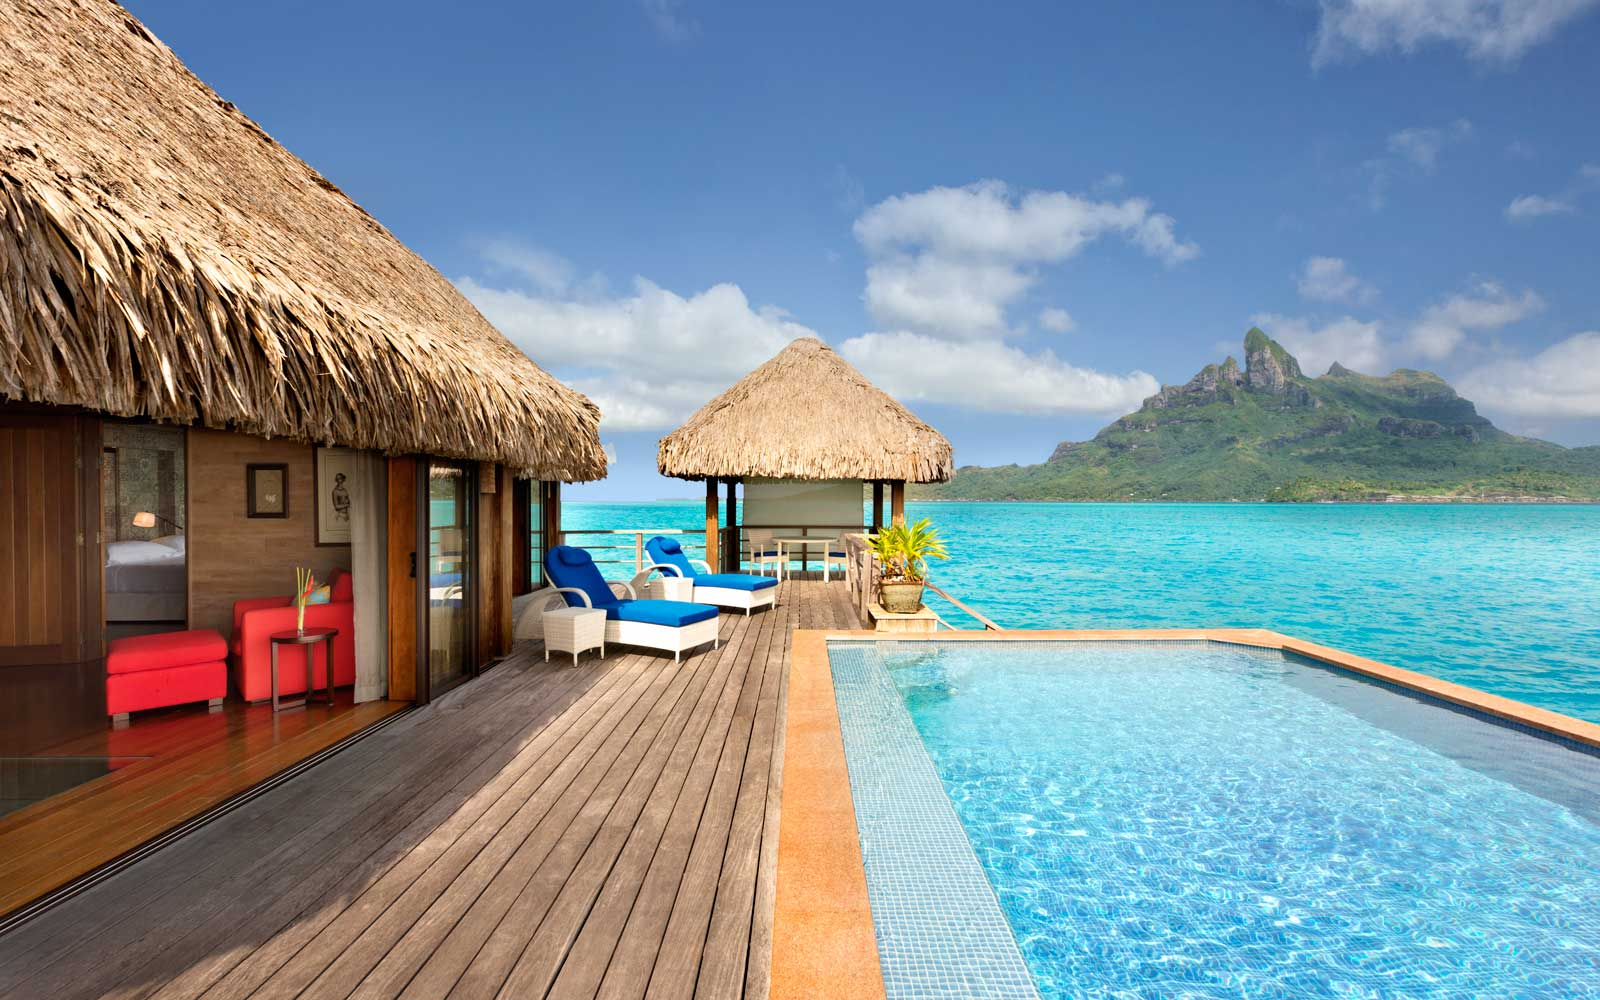 Pool view from the St Regis Bora Bora